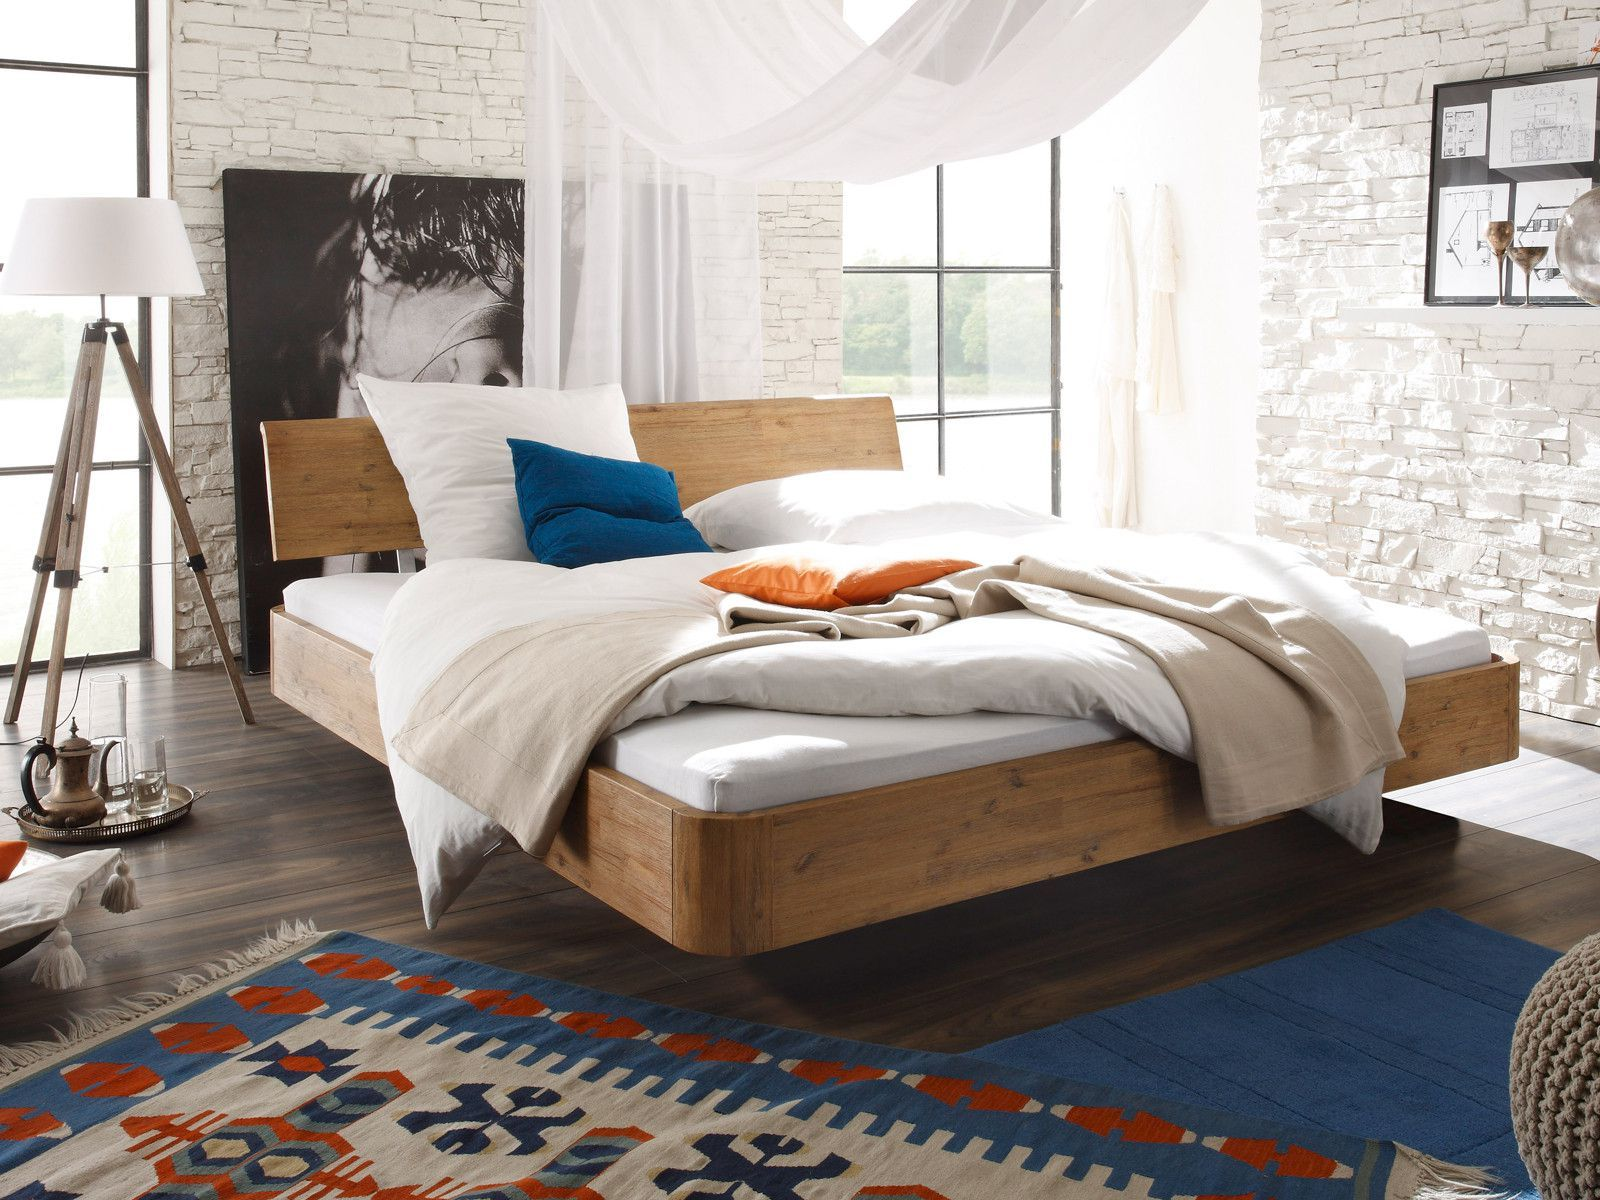 schwebebett salomon pinterest bett schlafzimmer und wohnen. Black Bedroom Furniture Sets. Home Design Ideas